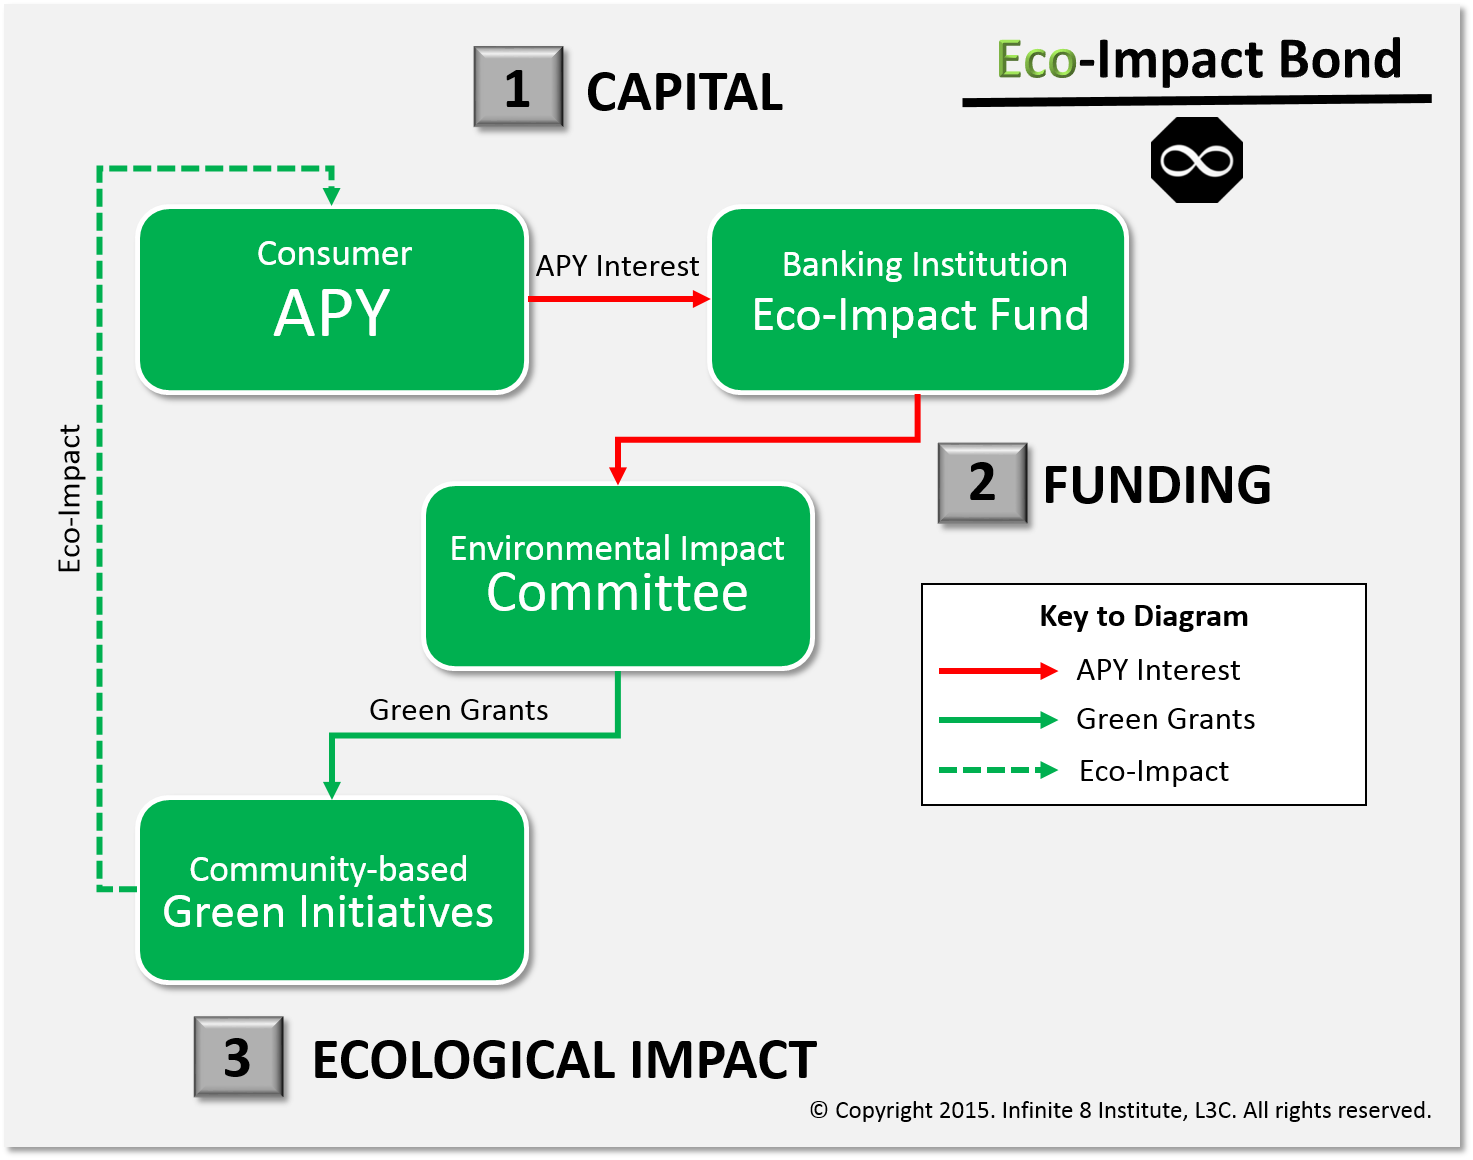 The Eco-Impact Bond is a financial product of Infinite 8 Institute.